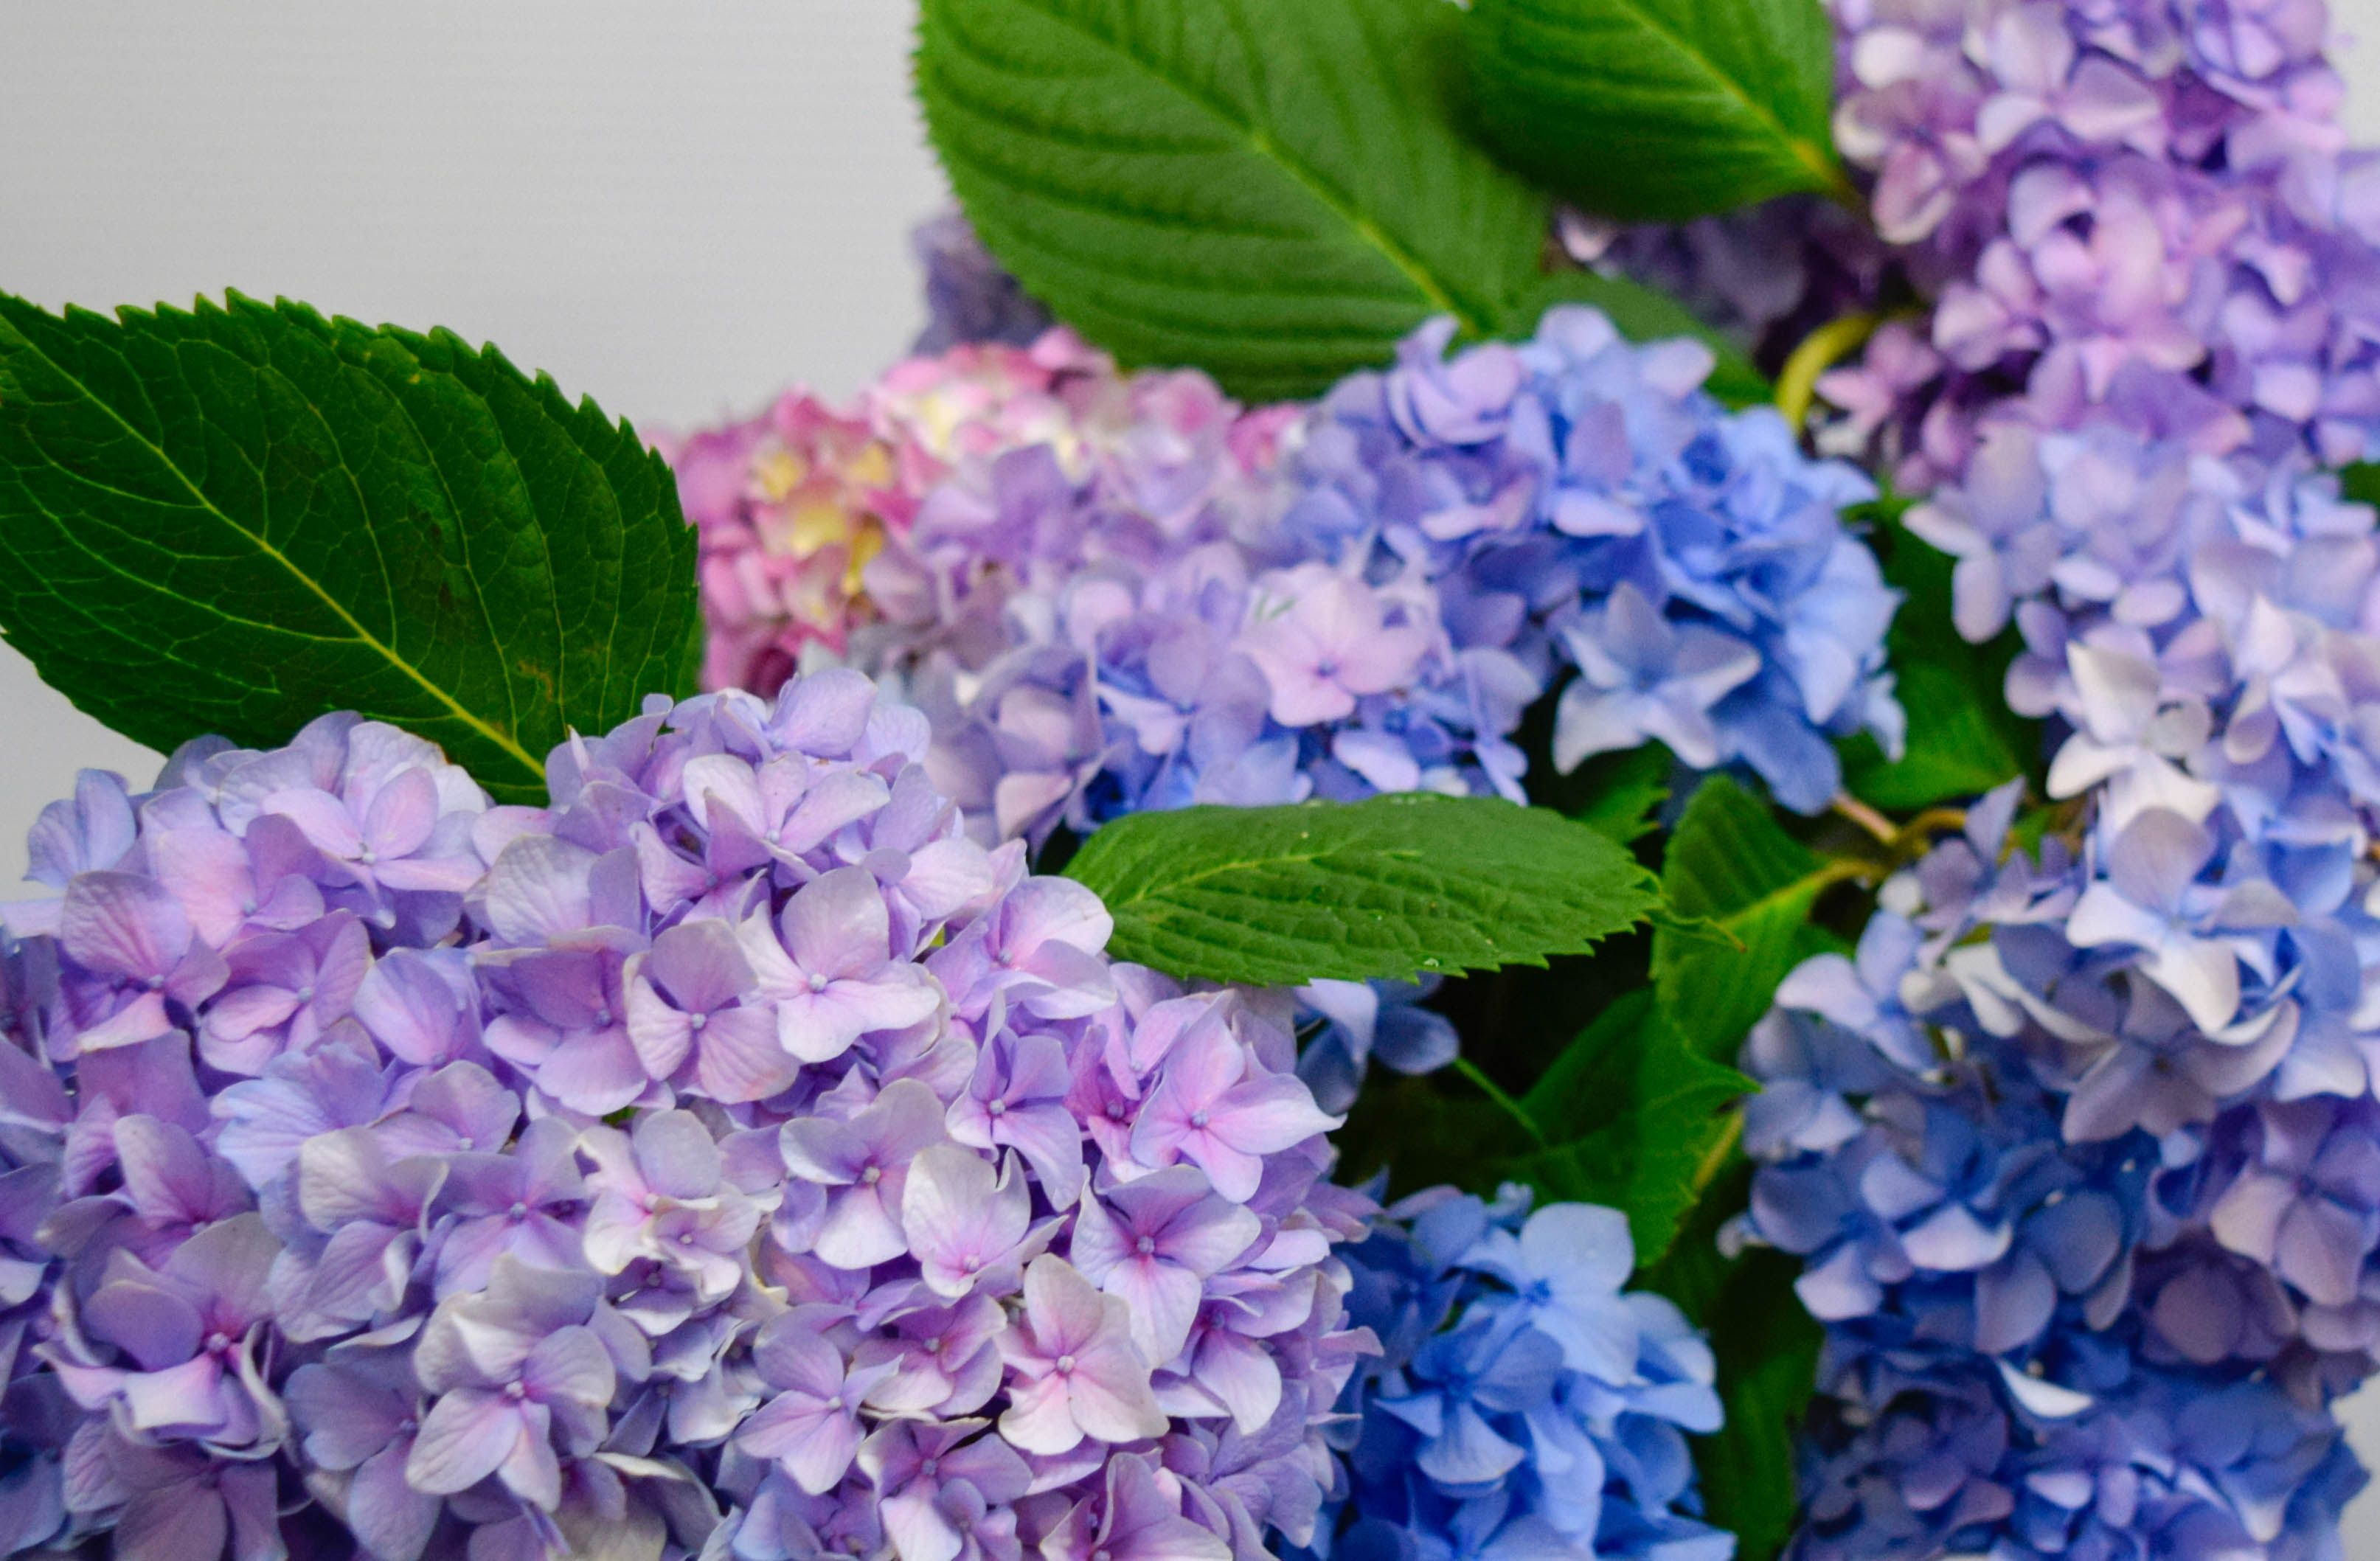 Hydrangeas First Discovered In Japan The Name Hydrangea Comes From The Greek Hydor Meaning Water And Angos Meaning Jar O Flower Delivery Flowers Beautiful Flowers